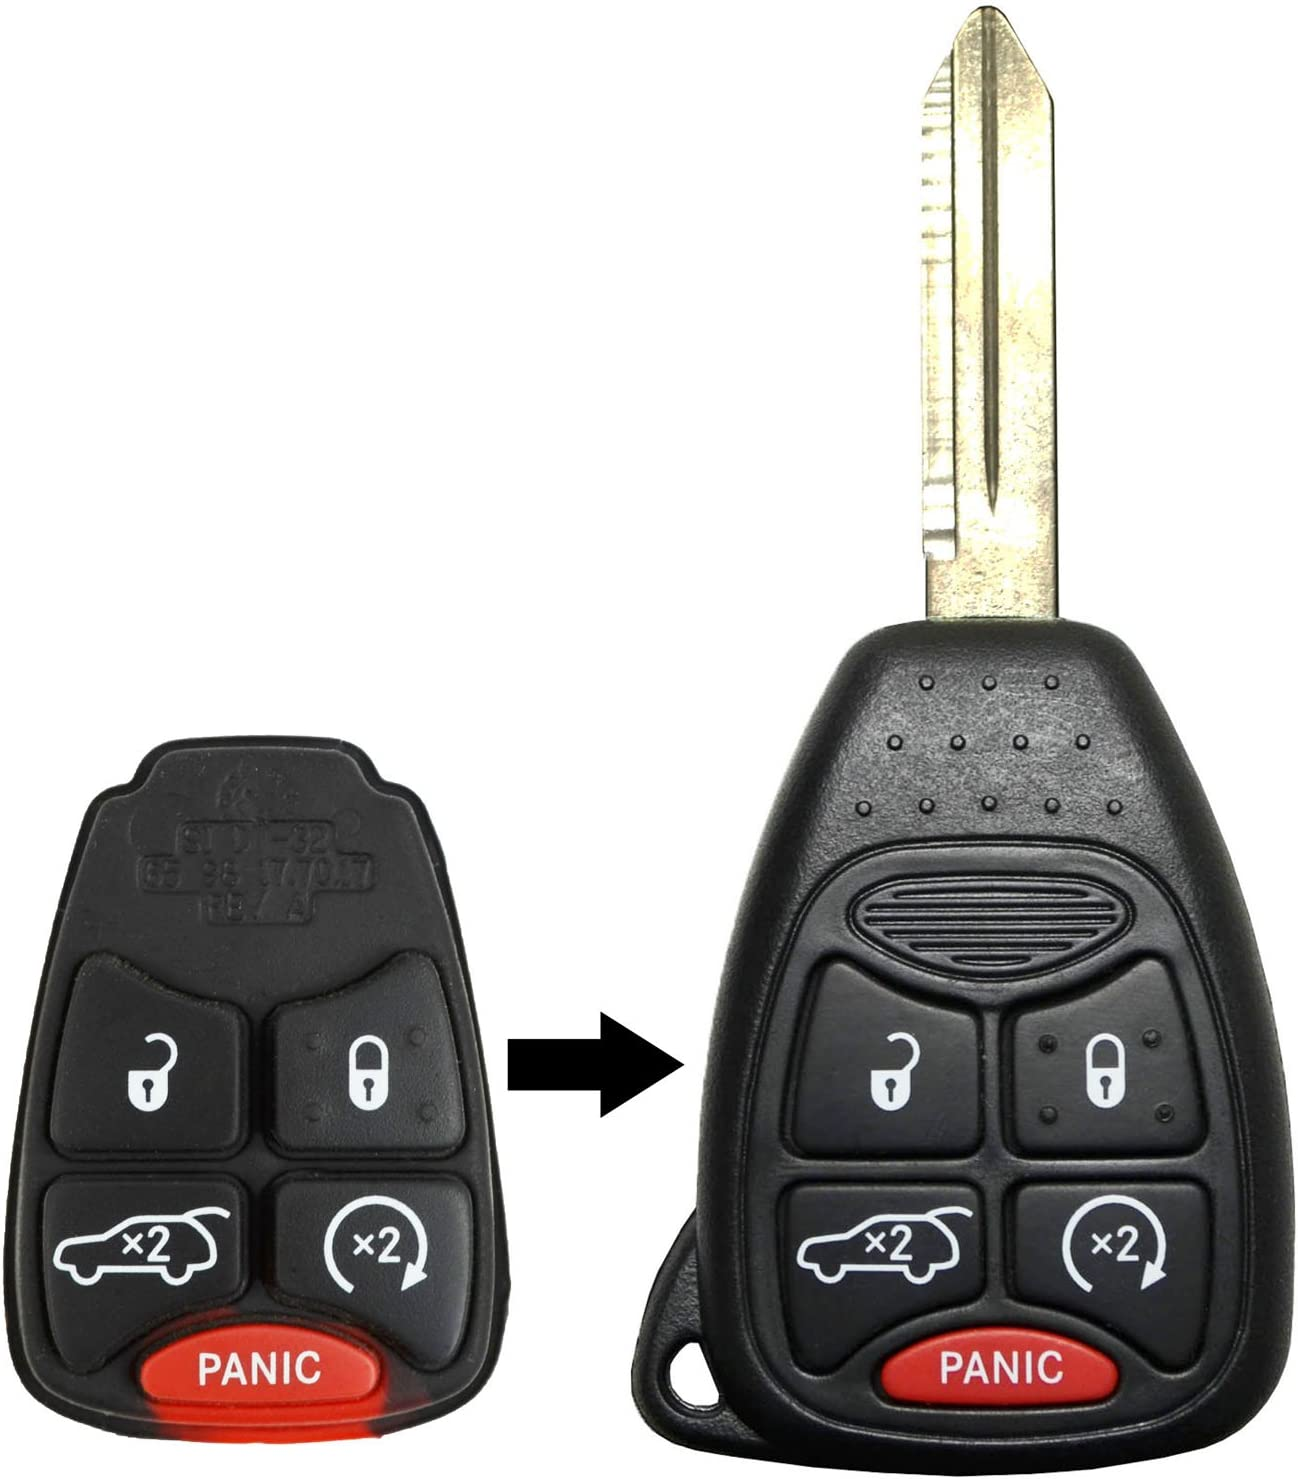 qualitykeylessplus Two Replacement 5 Button Hatch Remote Start Rubber Pads for Chrysler Dodge Jeep with Free KEYTAG